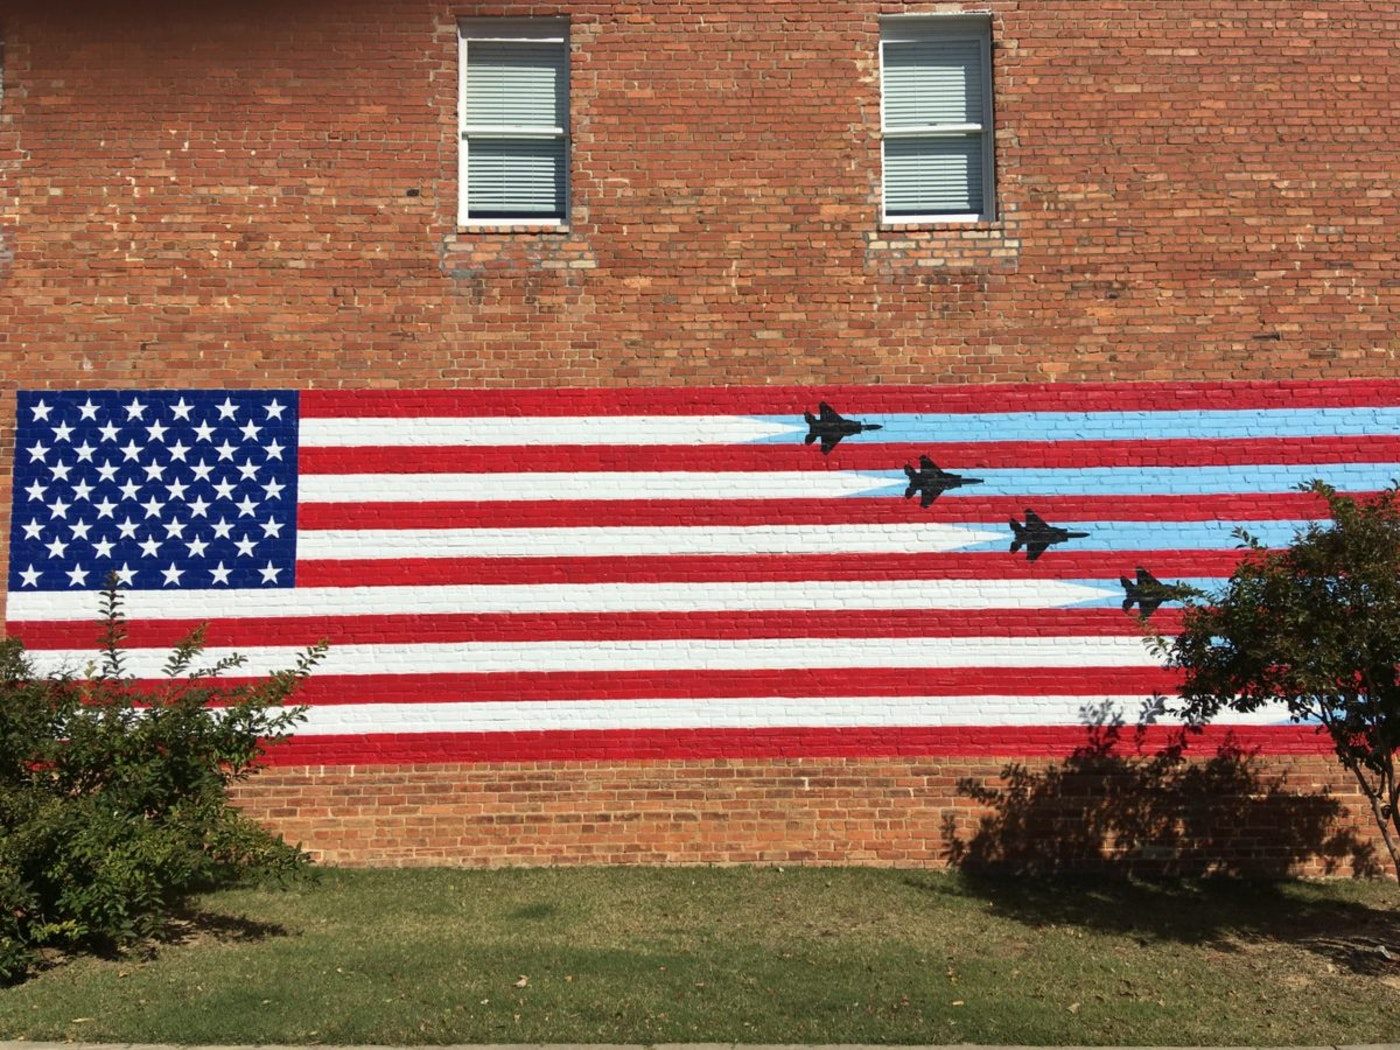 A mural in downtown Goldsboro. (Photo by Billy Ball)